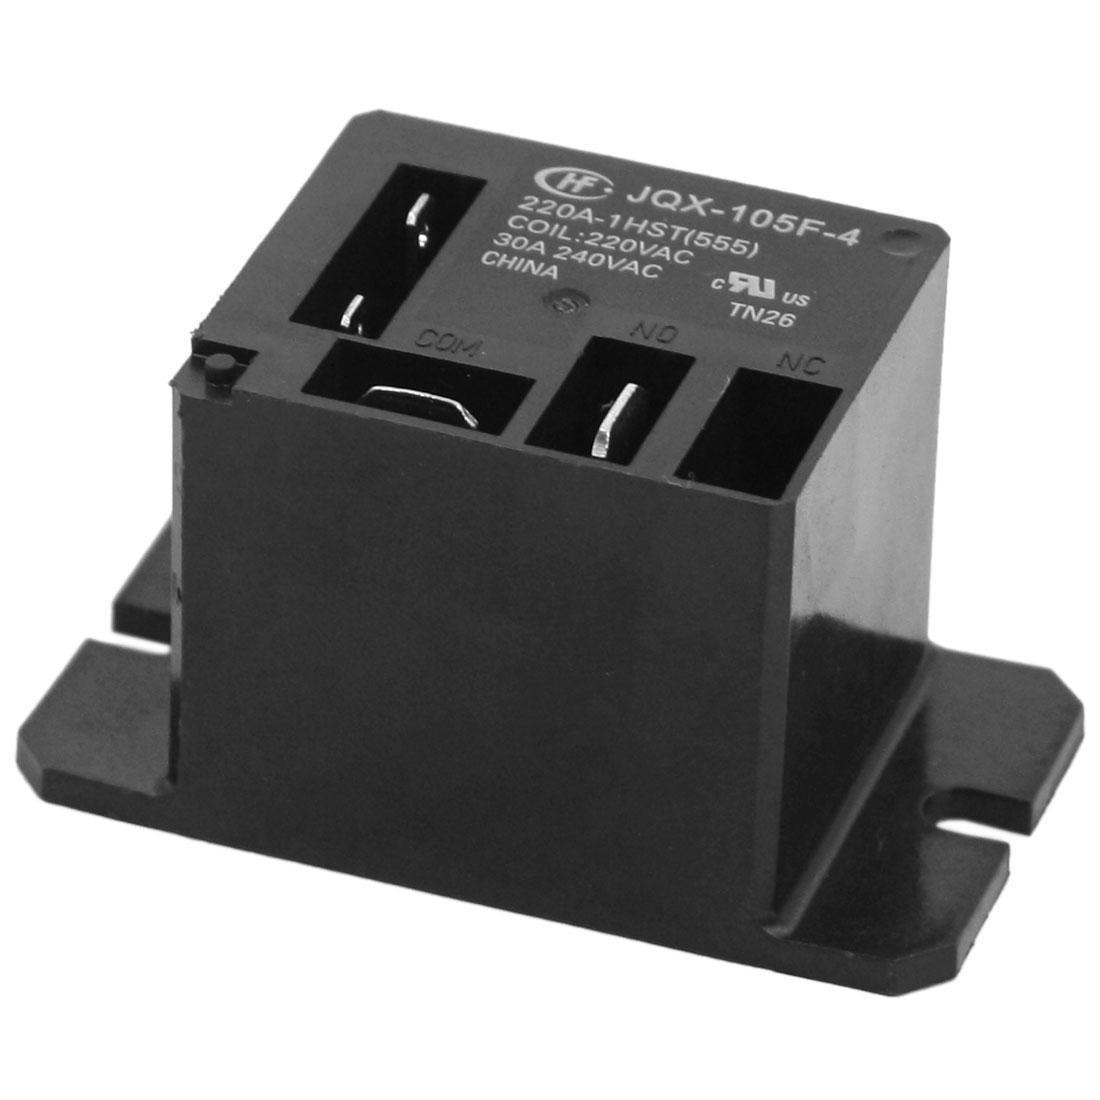 Online Cheap Miniature High Power Single Pole Normally Open Car Relay Vs Closed Jqx 105f 4